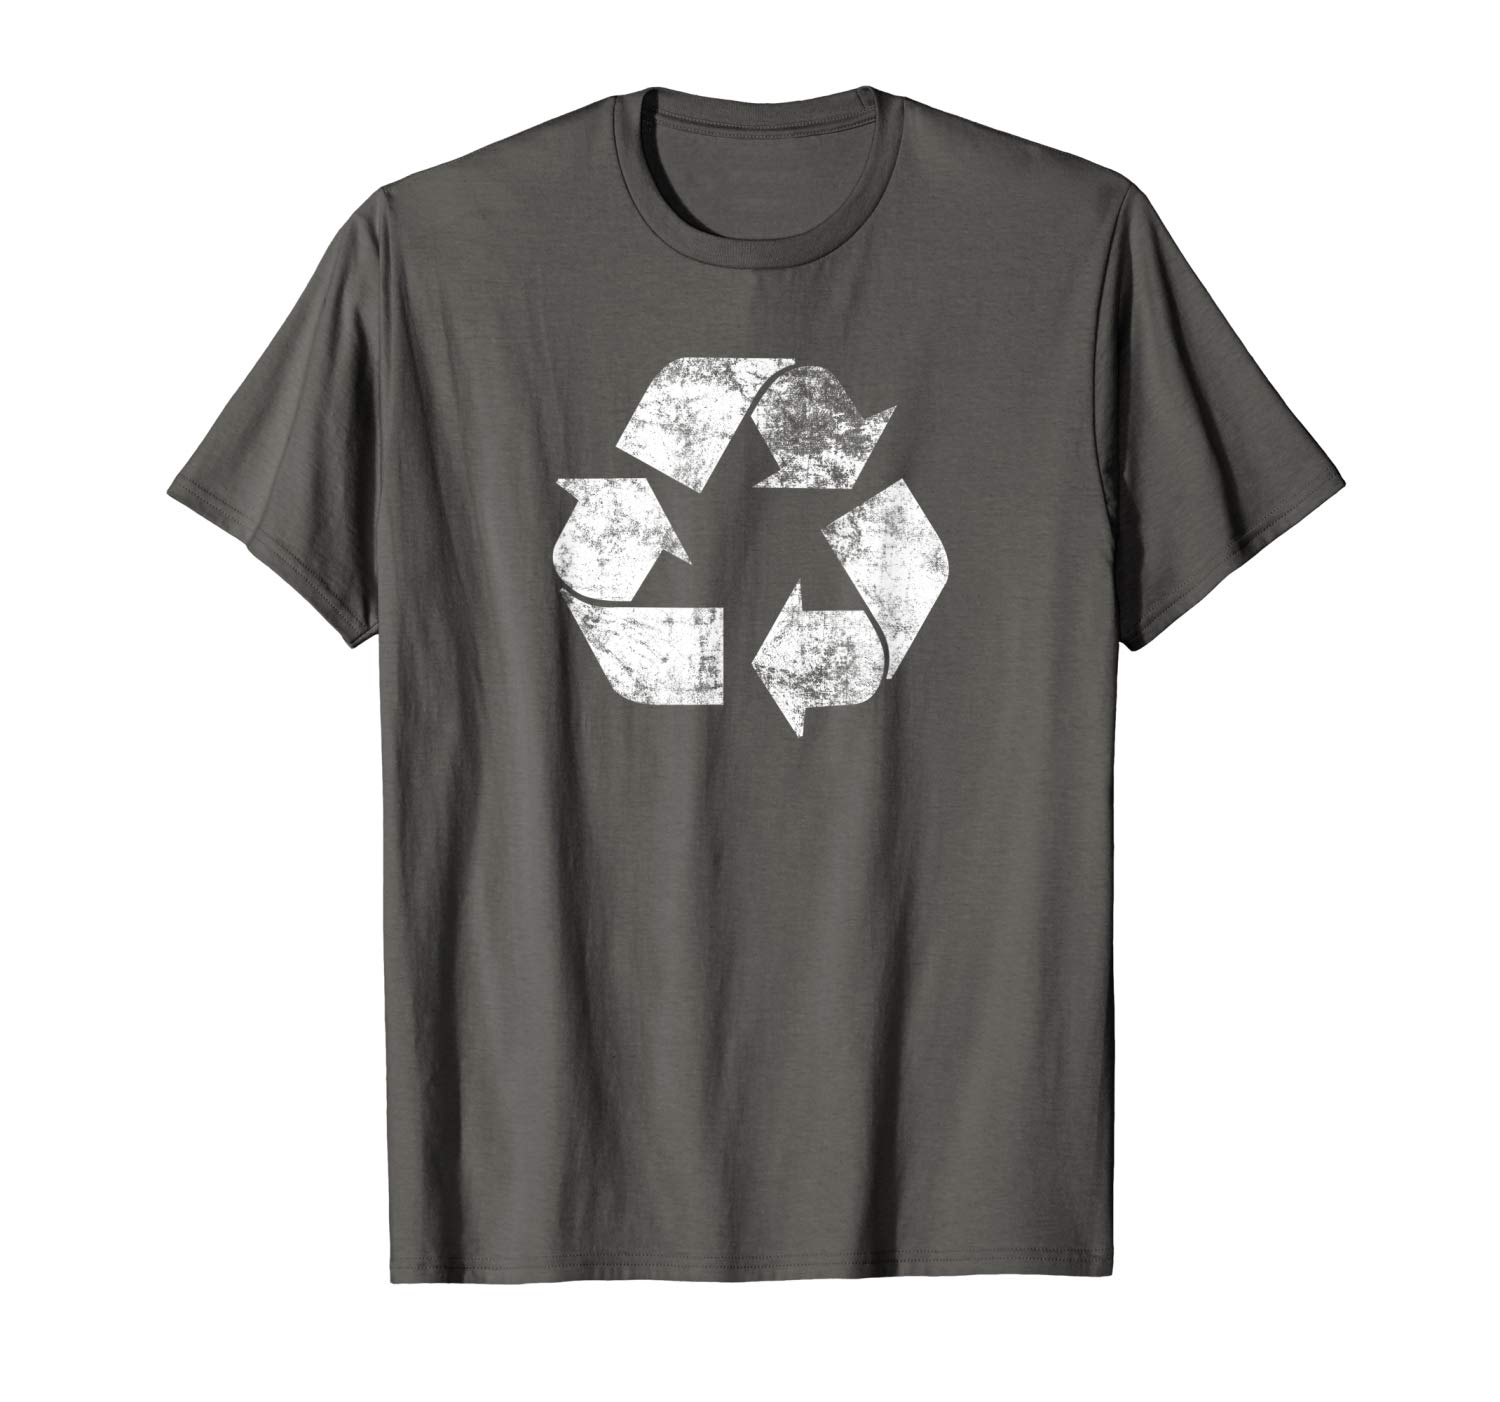 Earth Day Shirt Recycle Logo Vintage Recycling T Shirt Gift